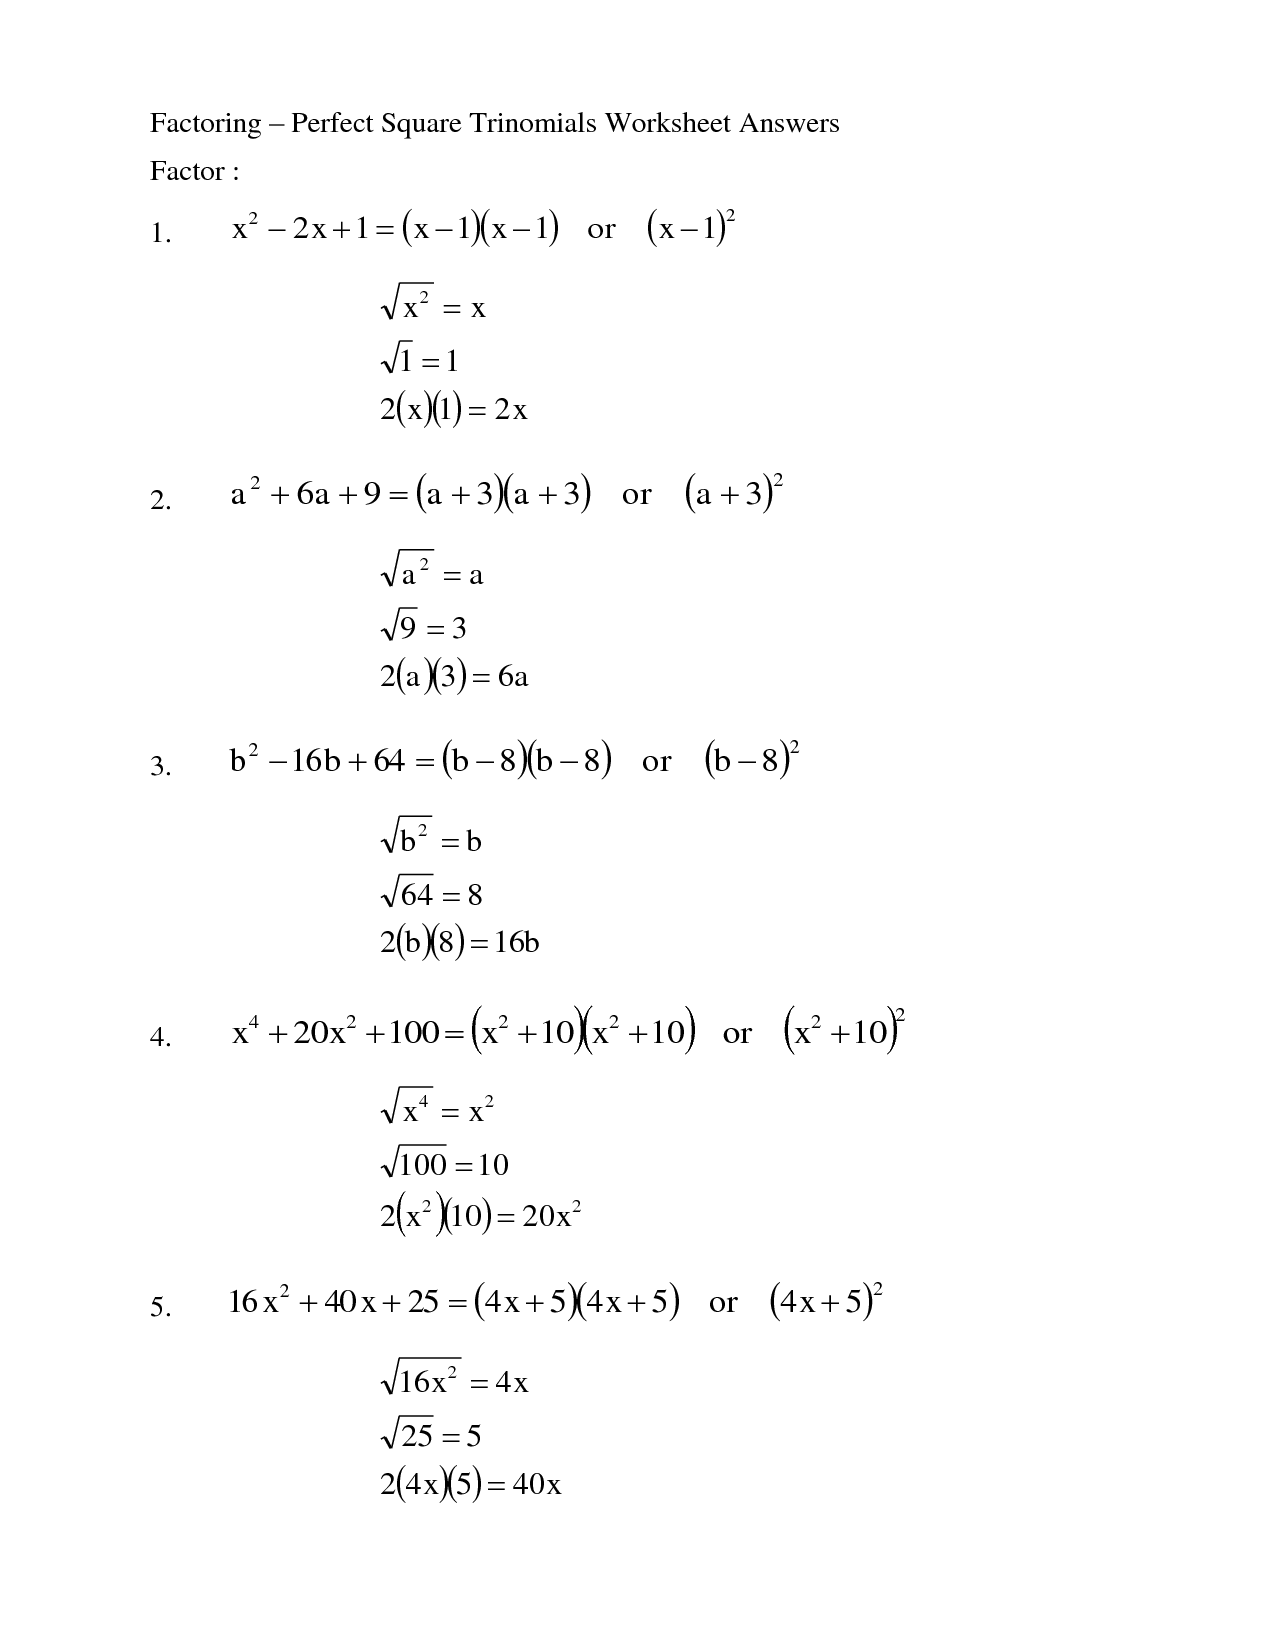 Worksheet Factoring Trinomials Answers Promotiontablecovers [ 1650 x 1275 Pixel ]